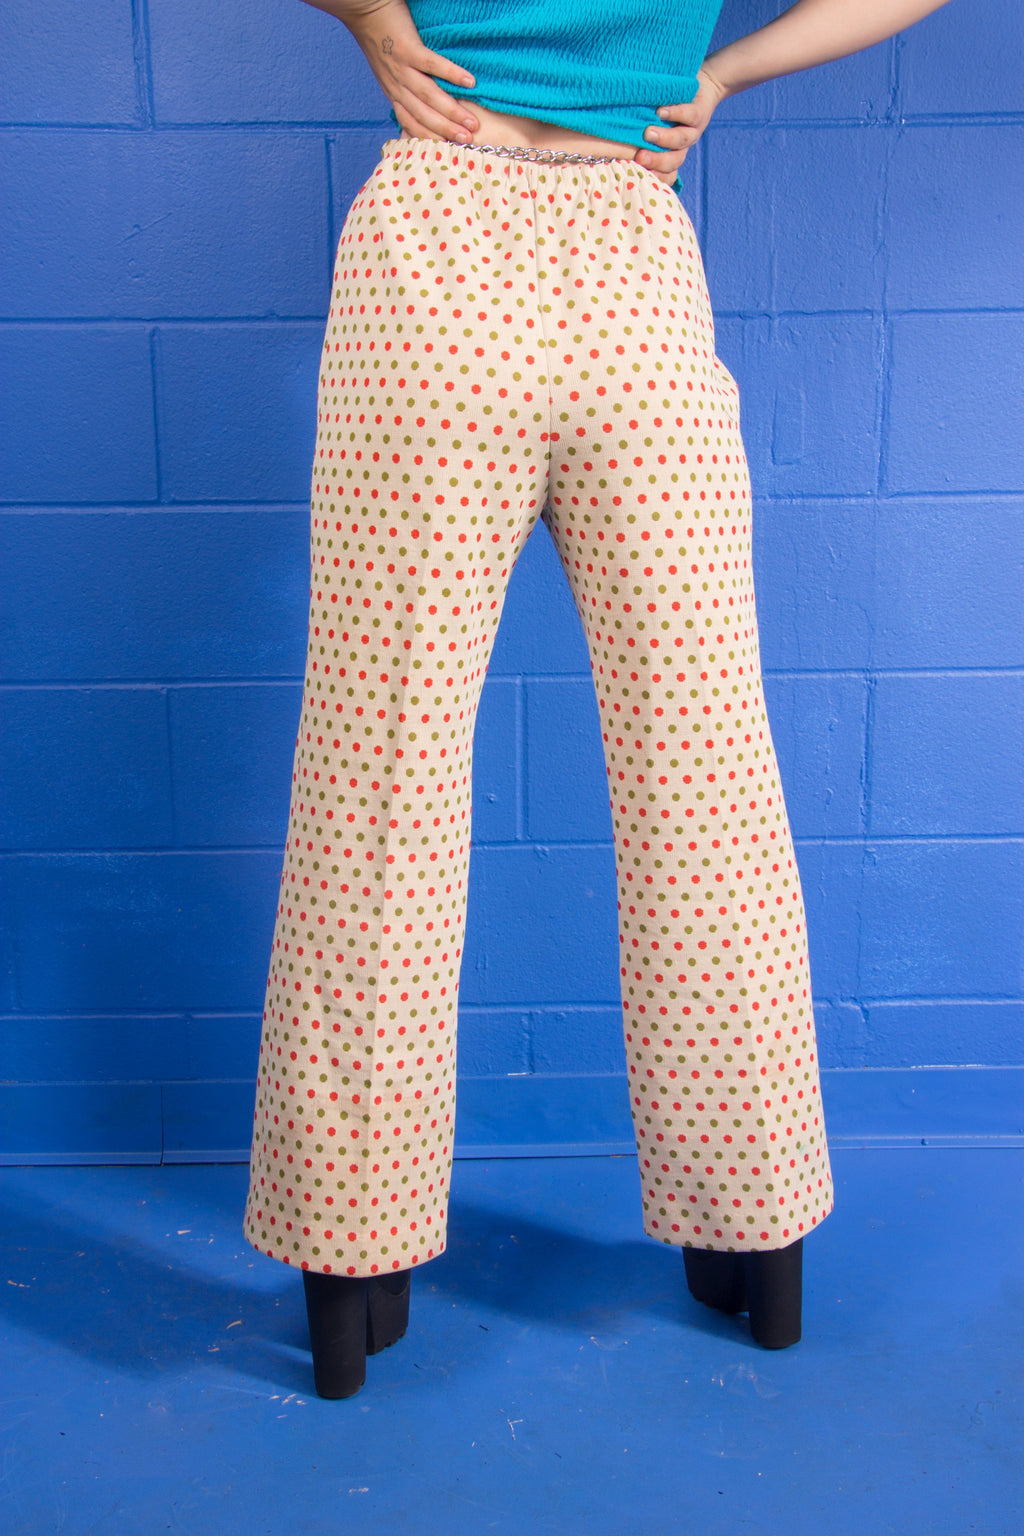 Vintage - 70's polkadotty pants